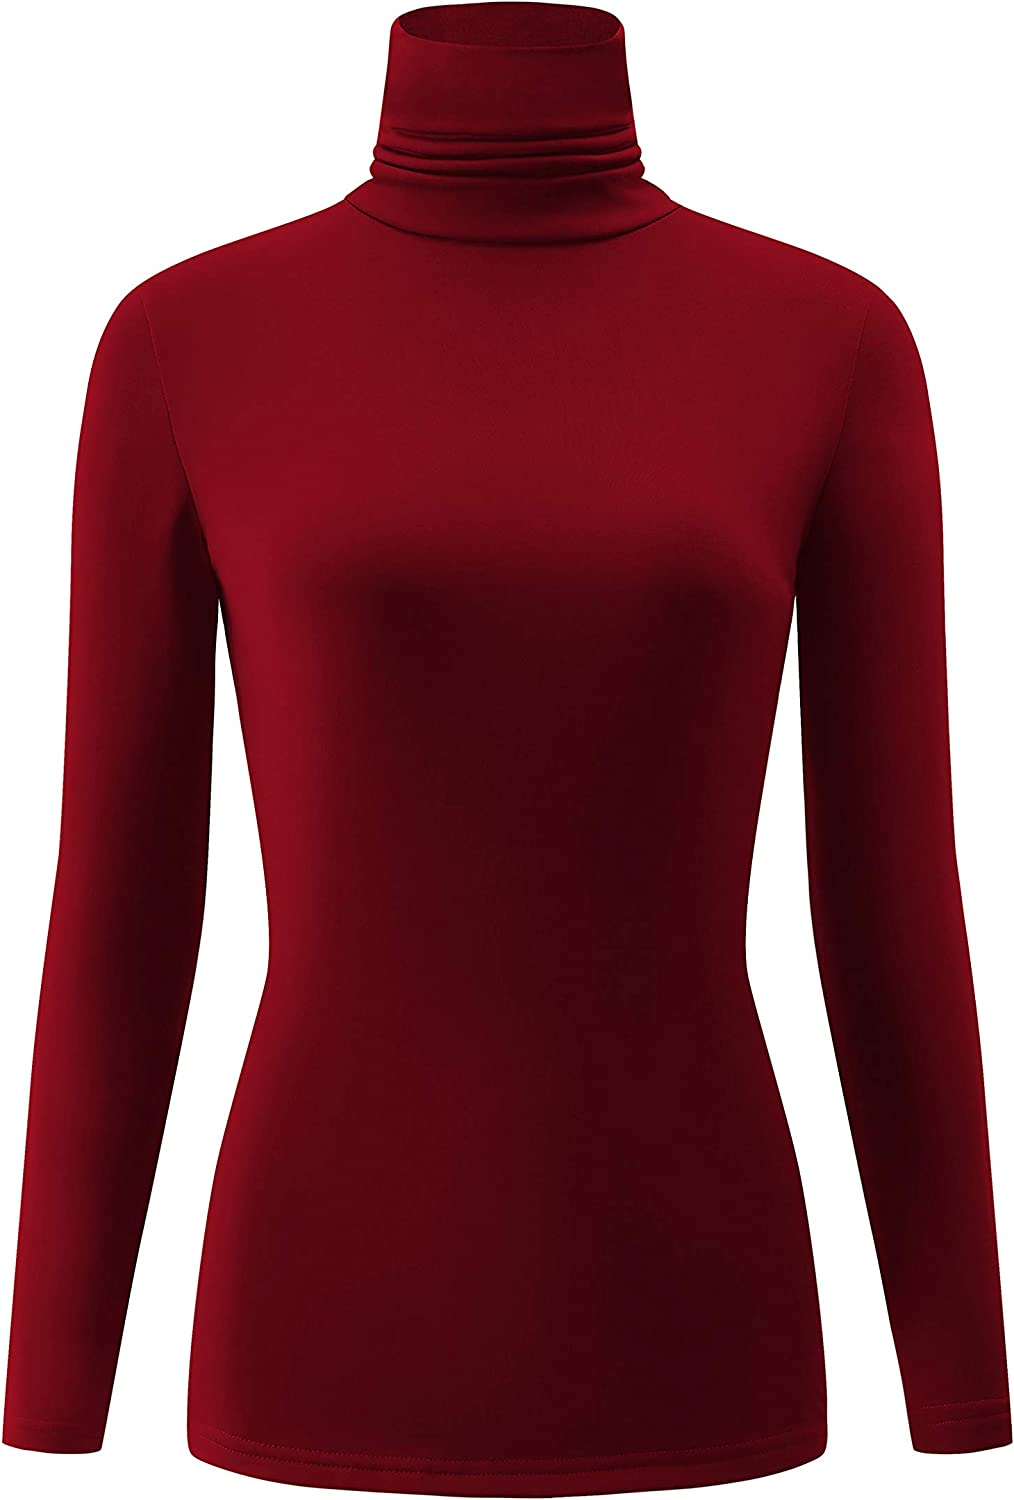 KLOTHO Casual Turtleneck Tops Lightweight Long Sleeve Soft Thermal Shirts for Women